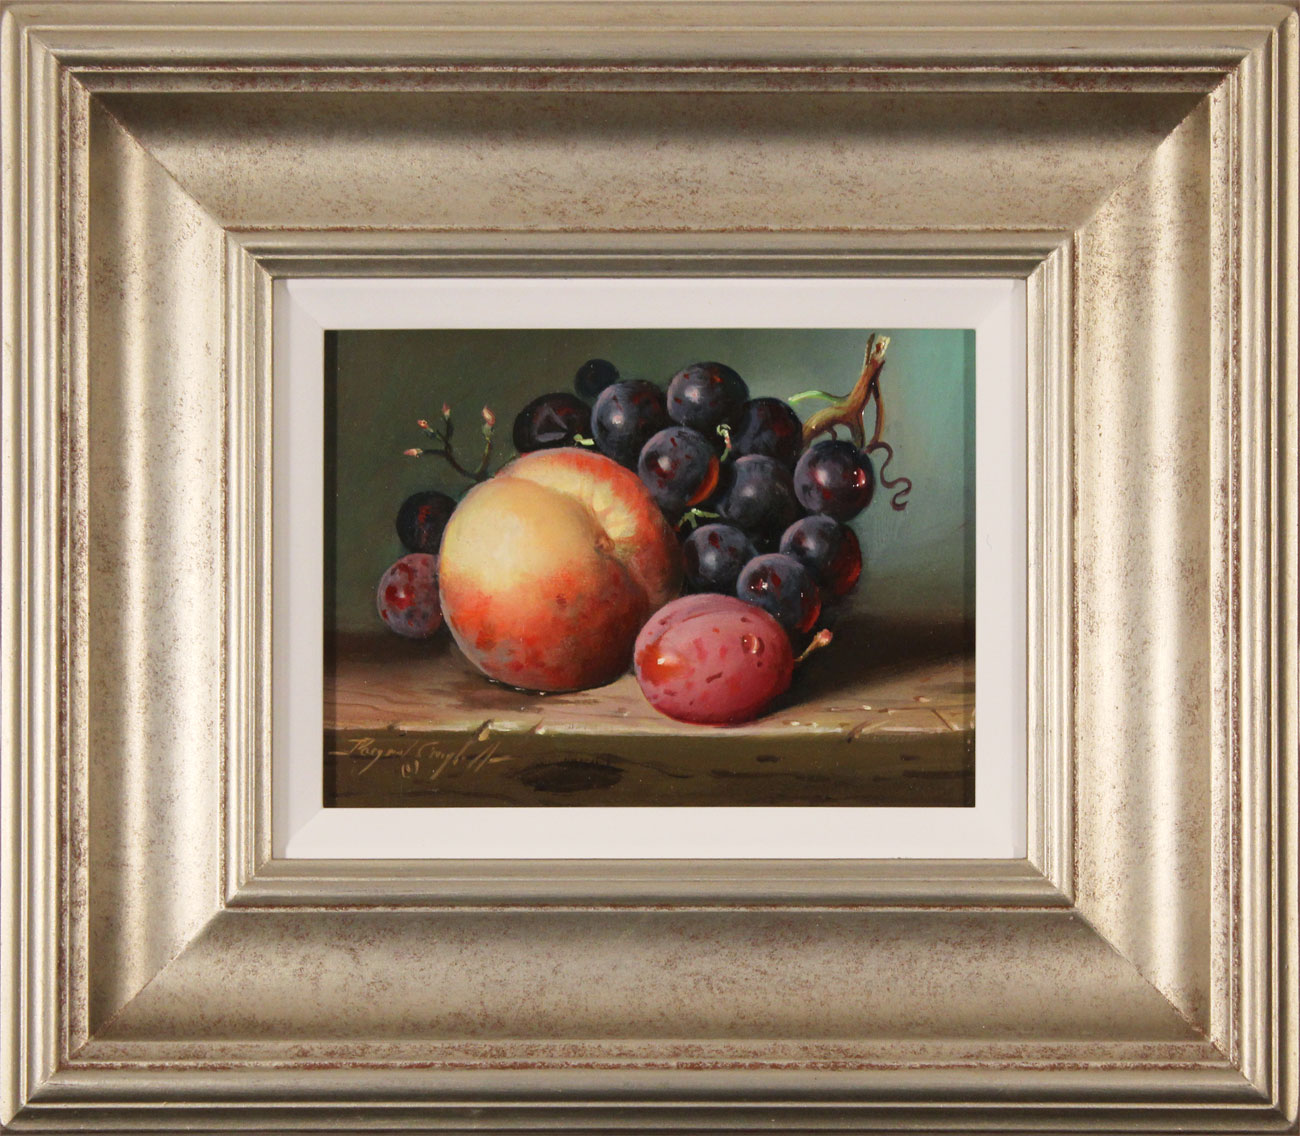 Raymond Campbell, Original oil painting on panel, Peach, Plum and Grapes Click to enlarge